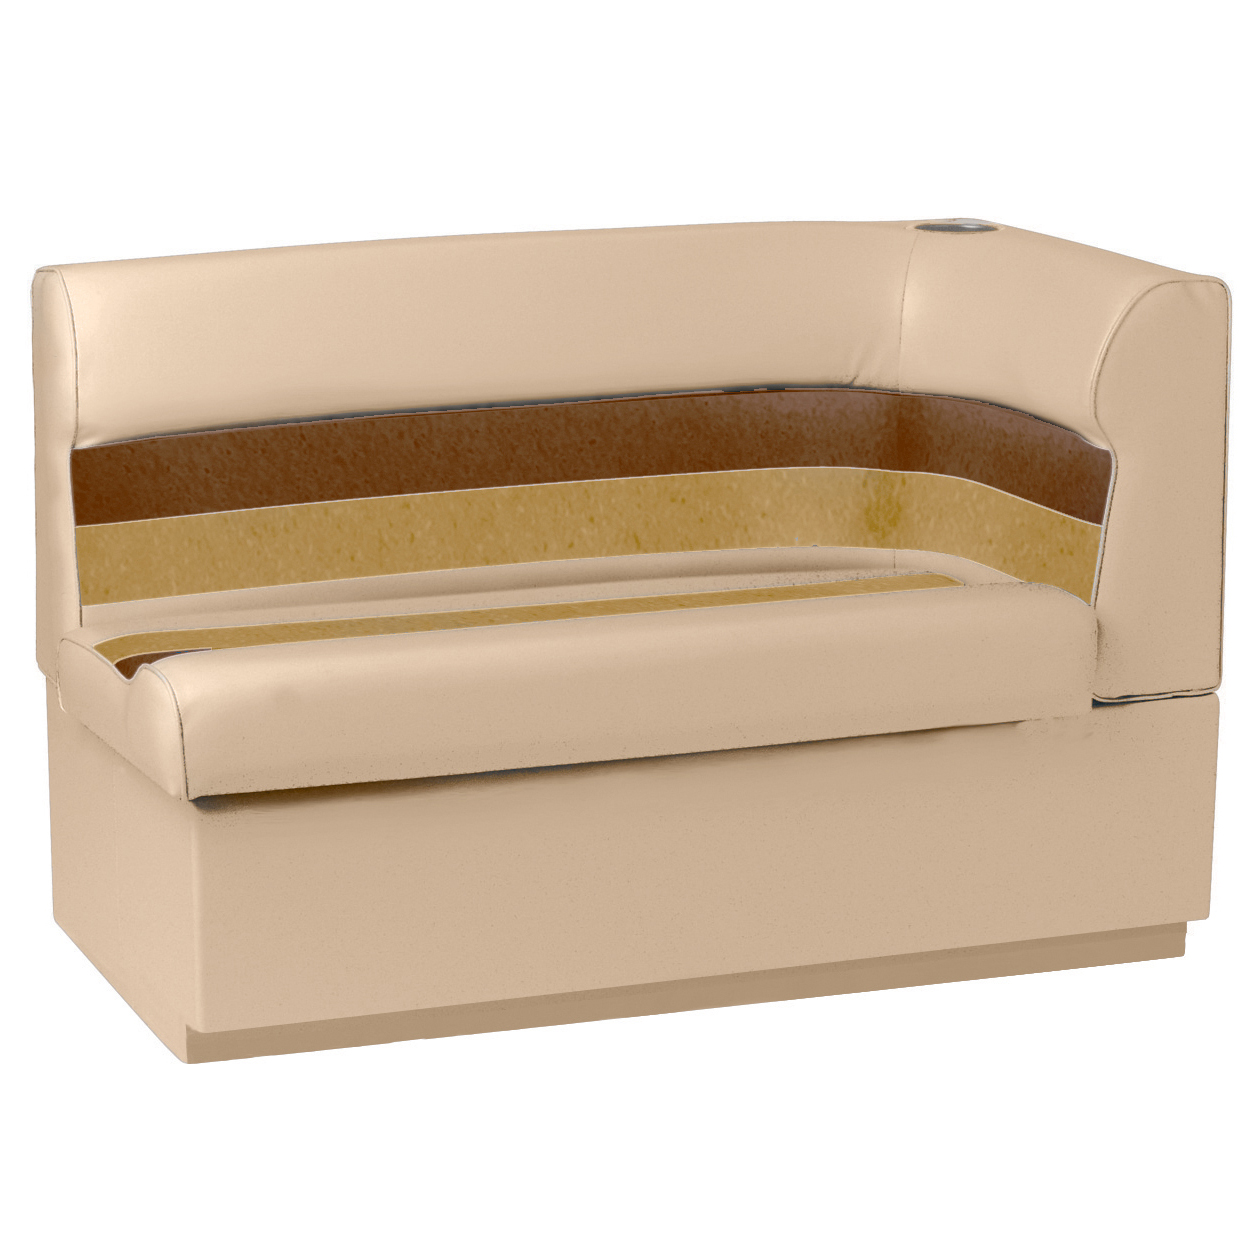 Toonmate Deluxe Pontoon Corner Couch with Toe Kick Base, Left Side, Sand